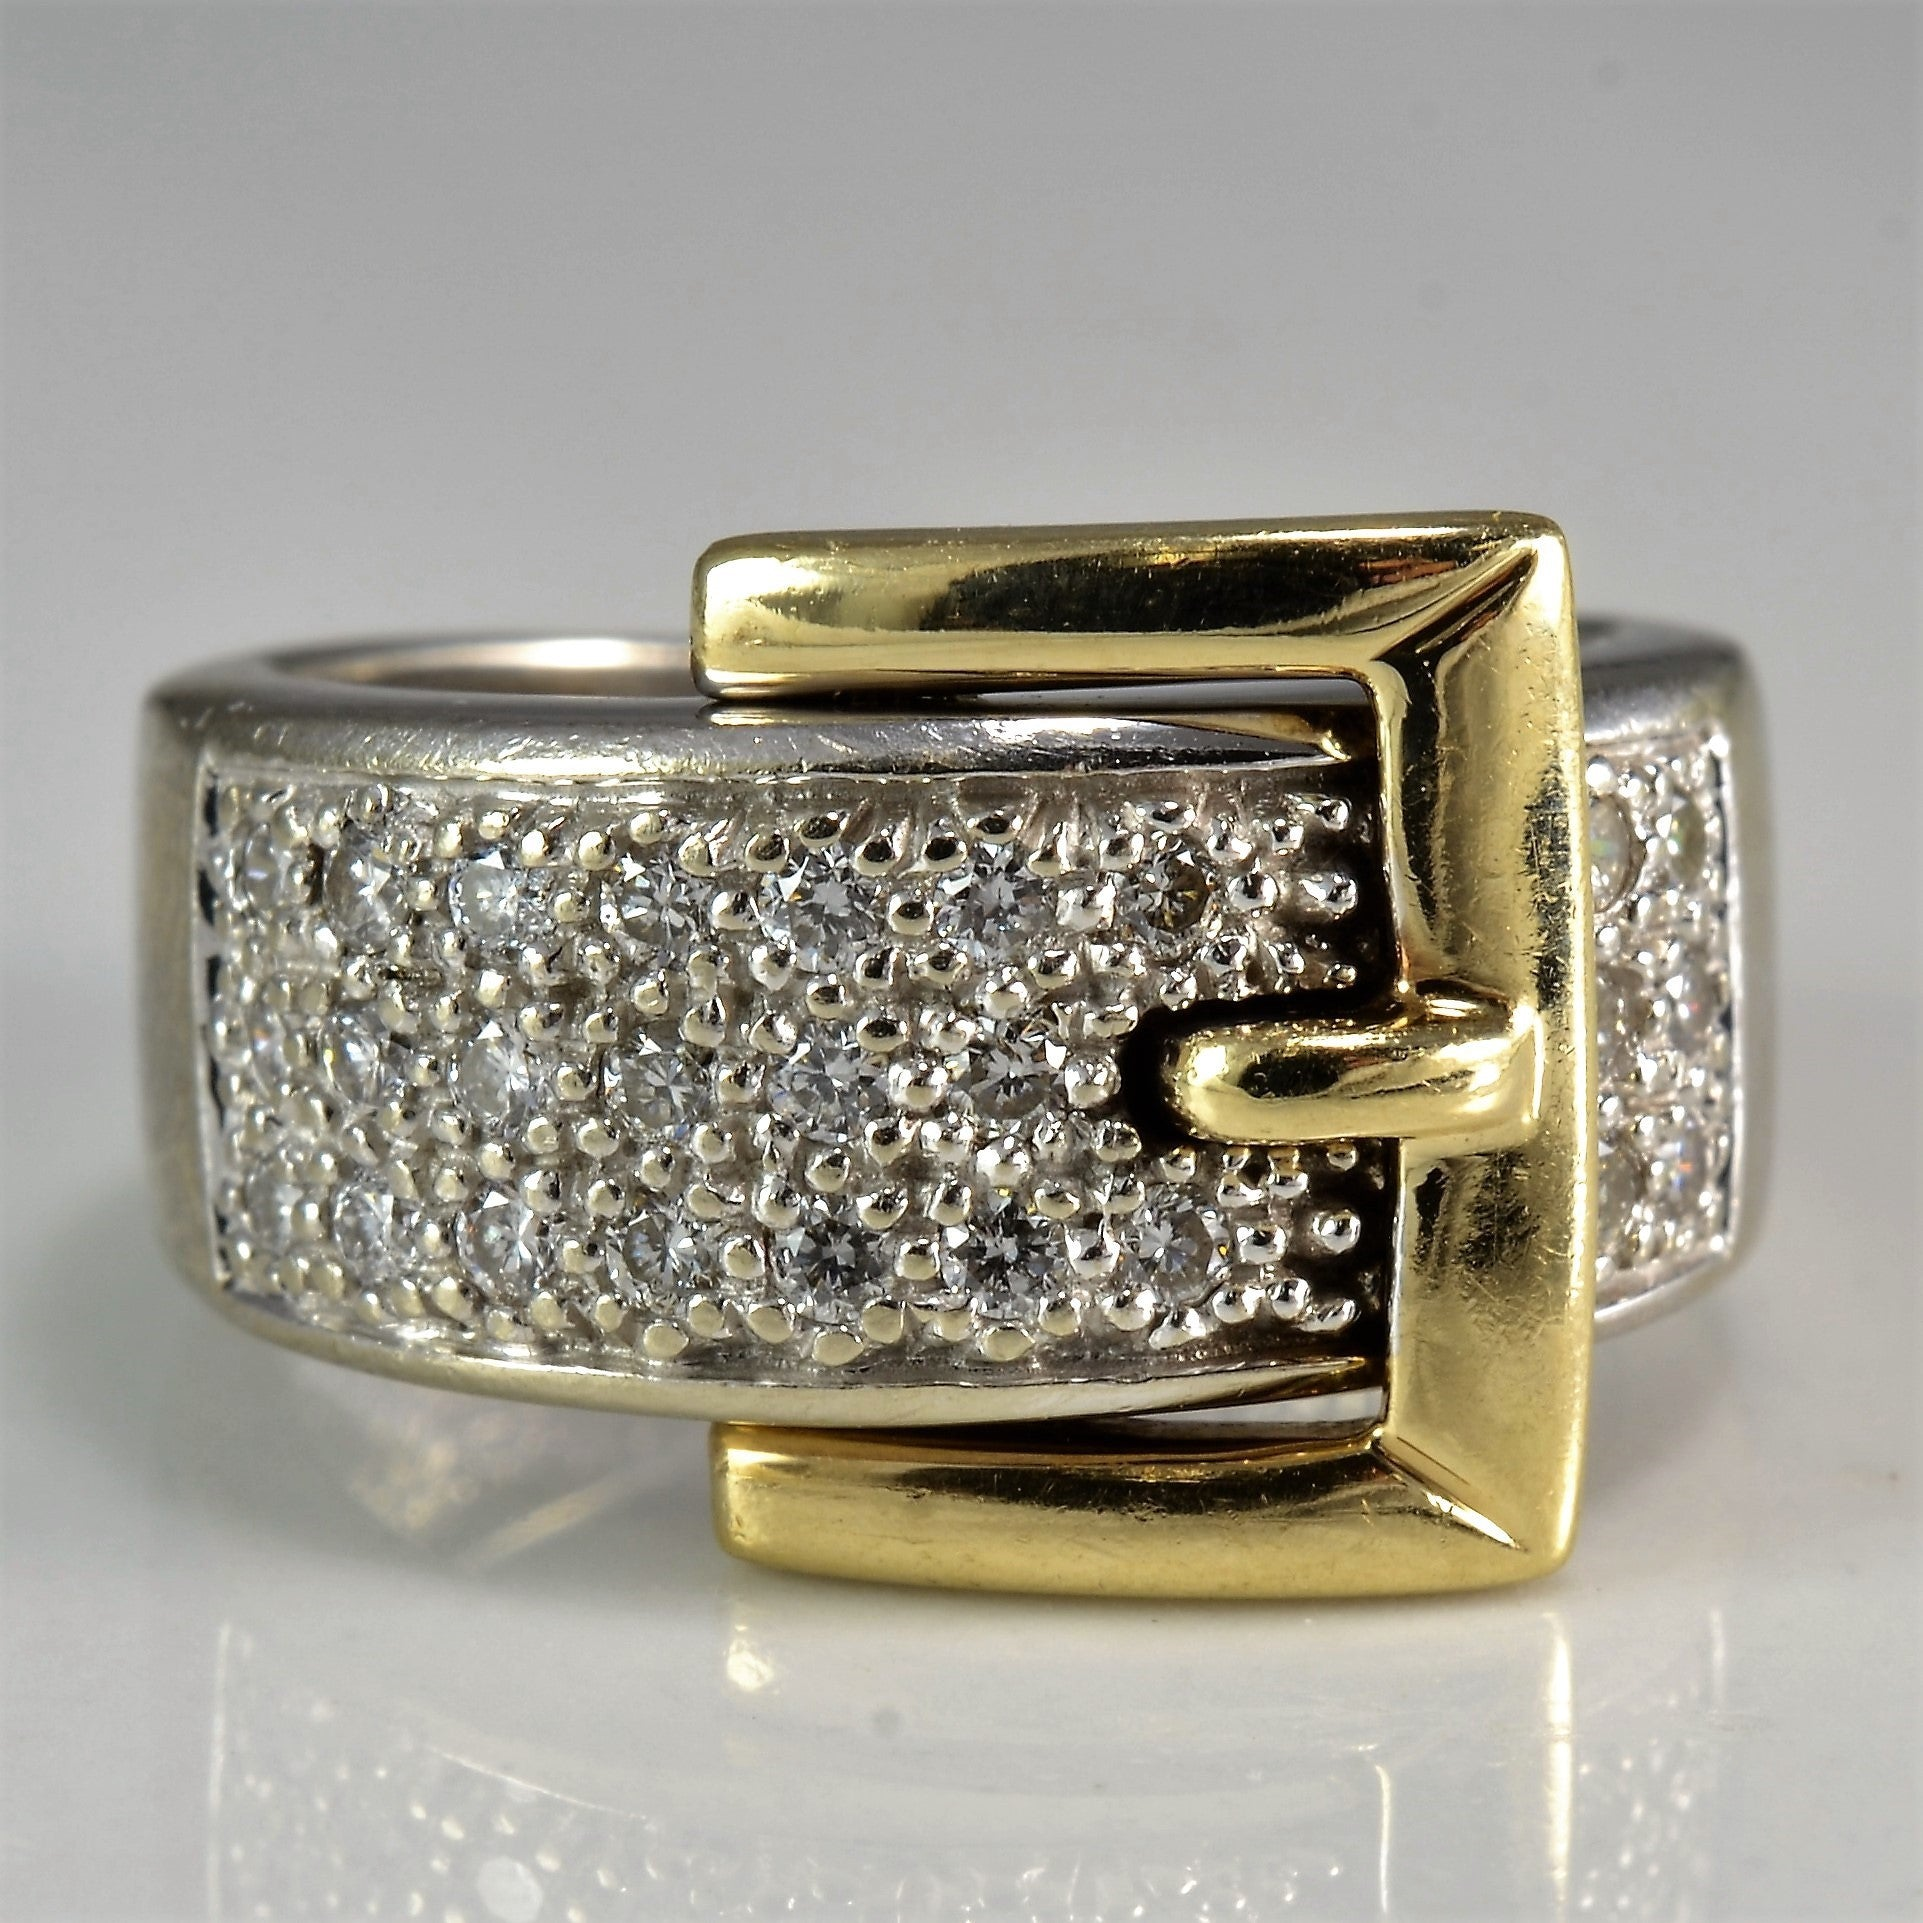 Two Tone Belt Buckle Fashion Ring | 0.26 ctw, SZ 4.5 |